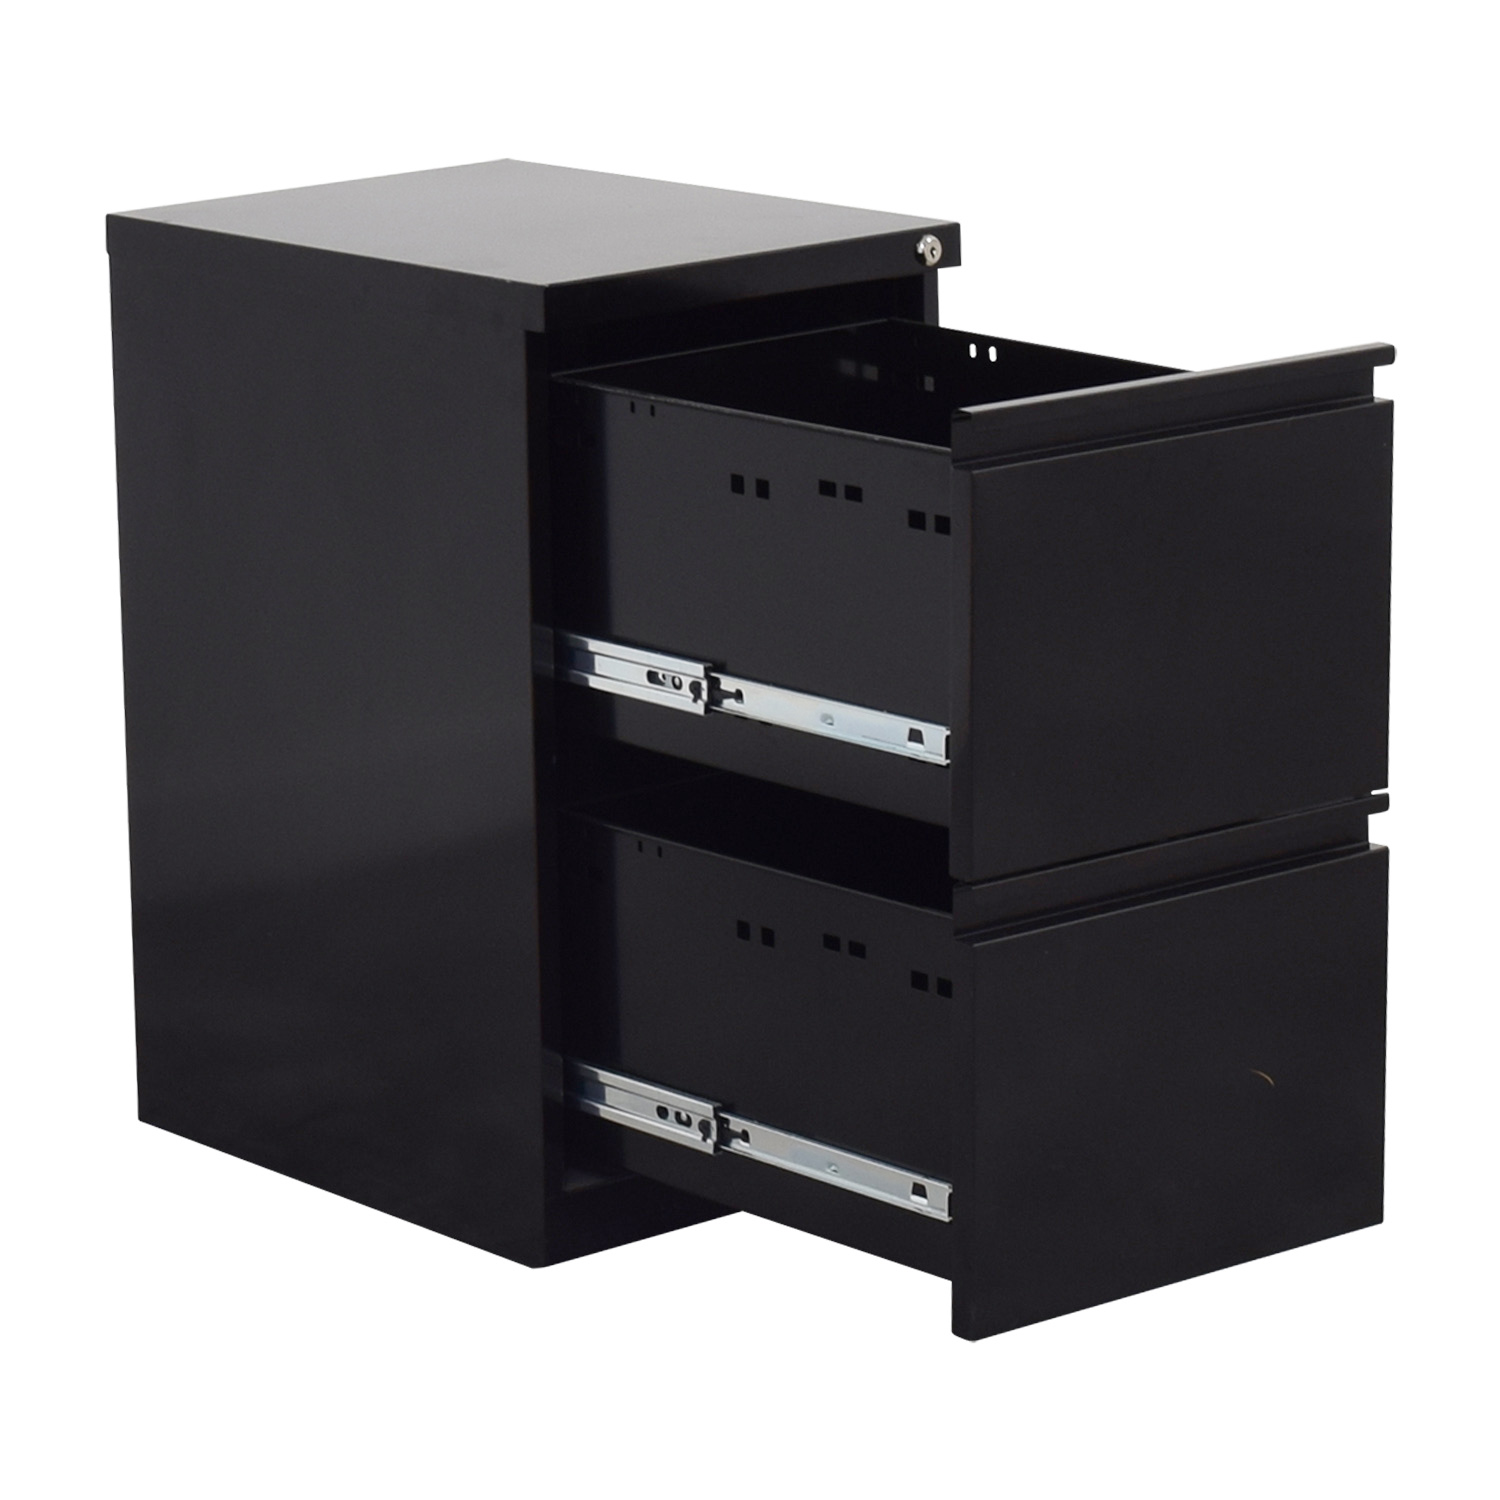 Staples Staples 2-Drawer Mobile Pedestal File Cabinet nyc